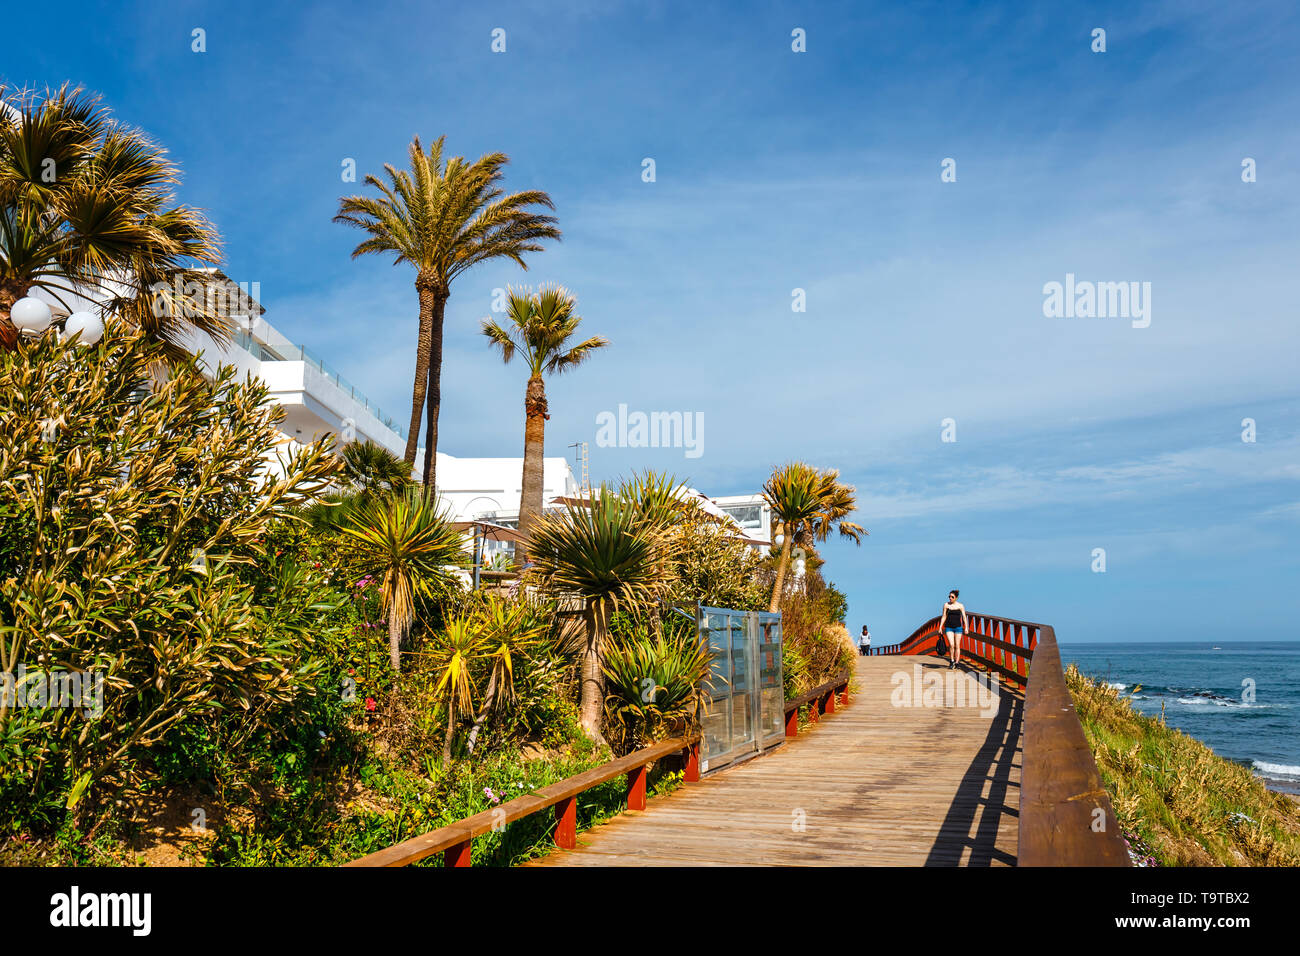 La Cala De Mijas, Spain, April 02, 2018: seaside promenade in La Cala De Mijas, Costa del Sol, Spain - Stock Image